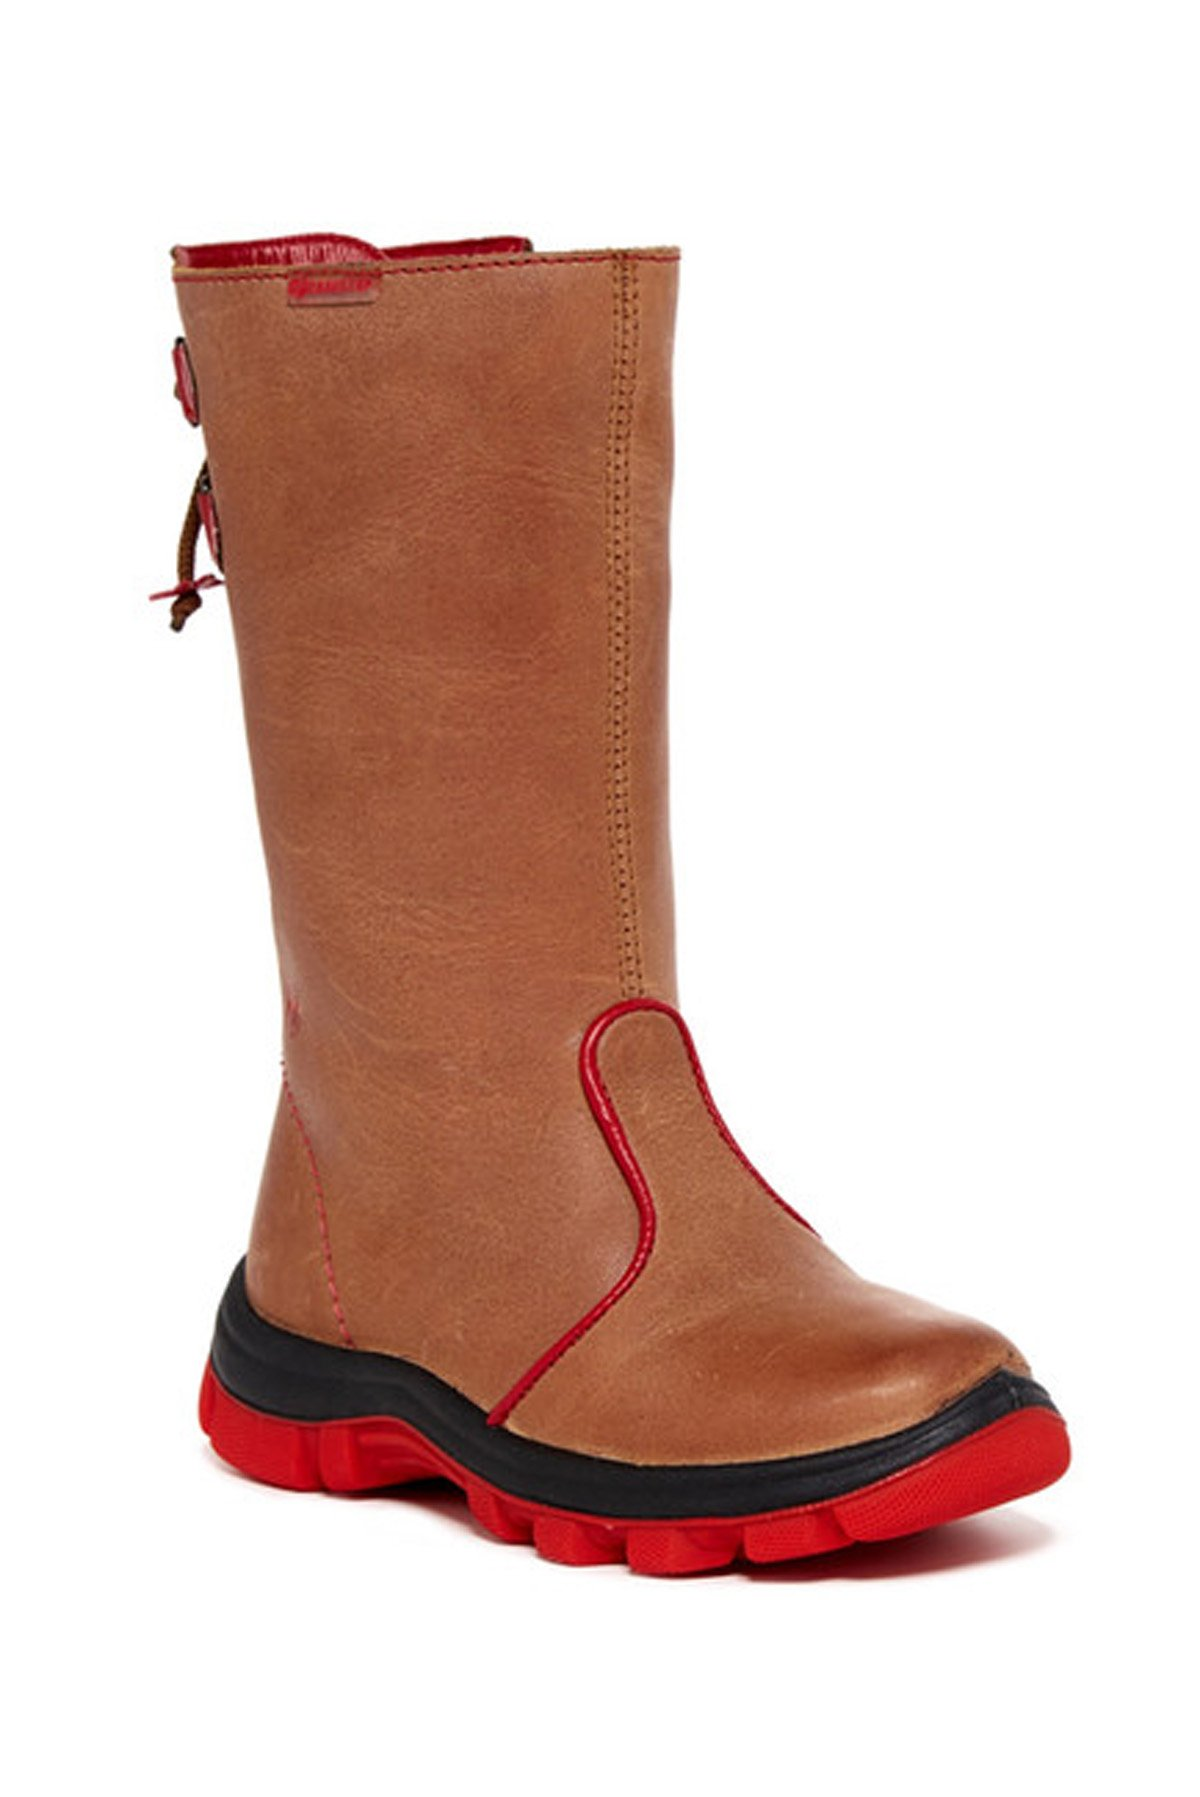 Naturino Yule FW13 Boot (Toddler/Little Kid),Bark/Rosso,26 EU SIZING(10 M US Toddler) by Naturino